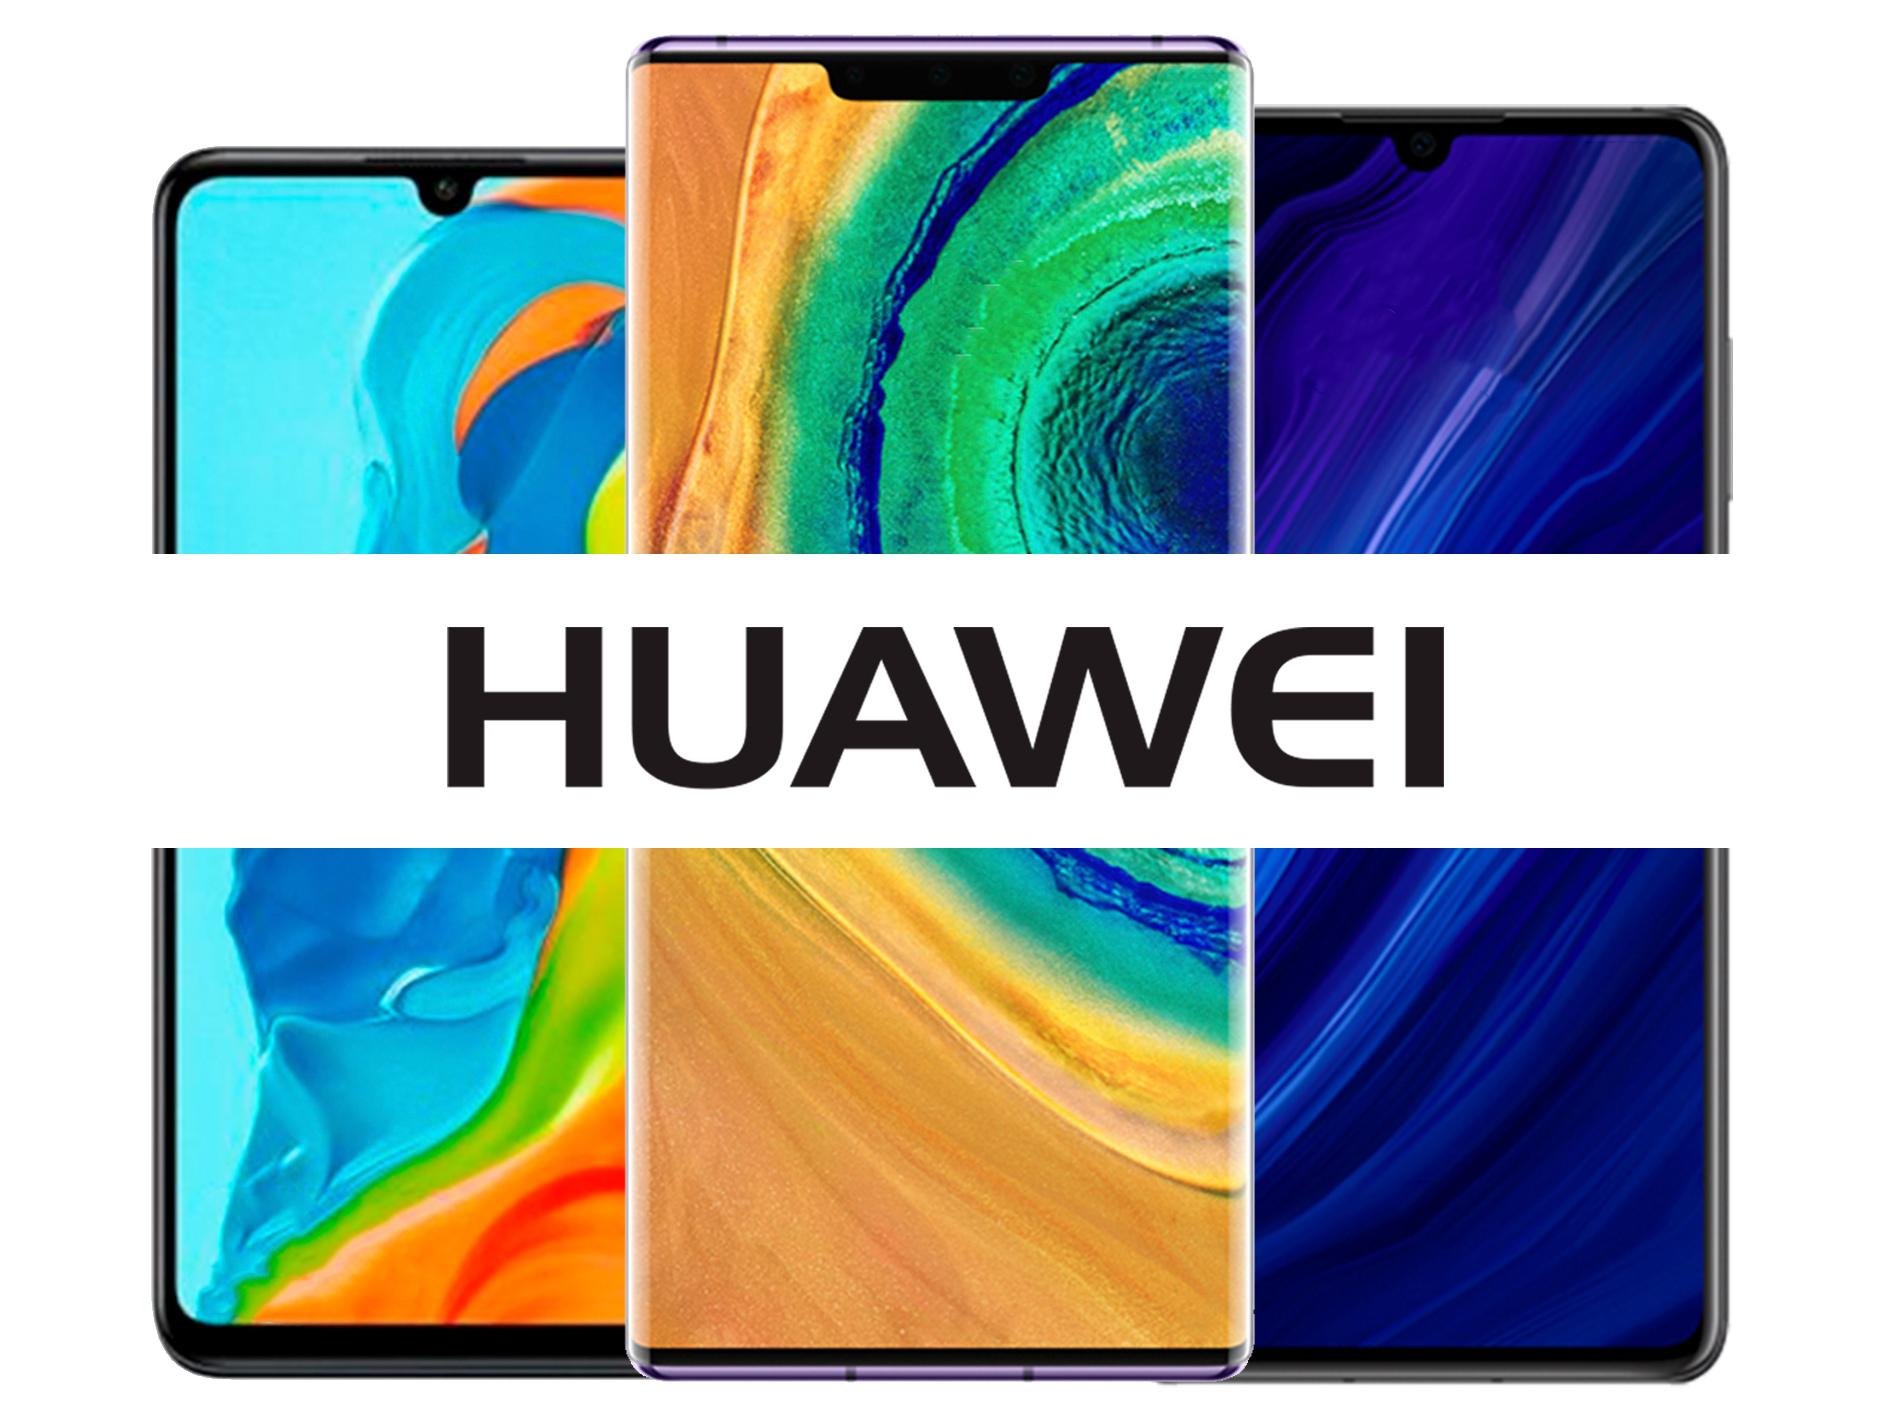 Huawei reparationer & services